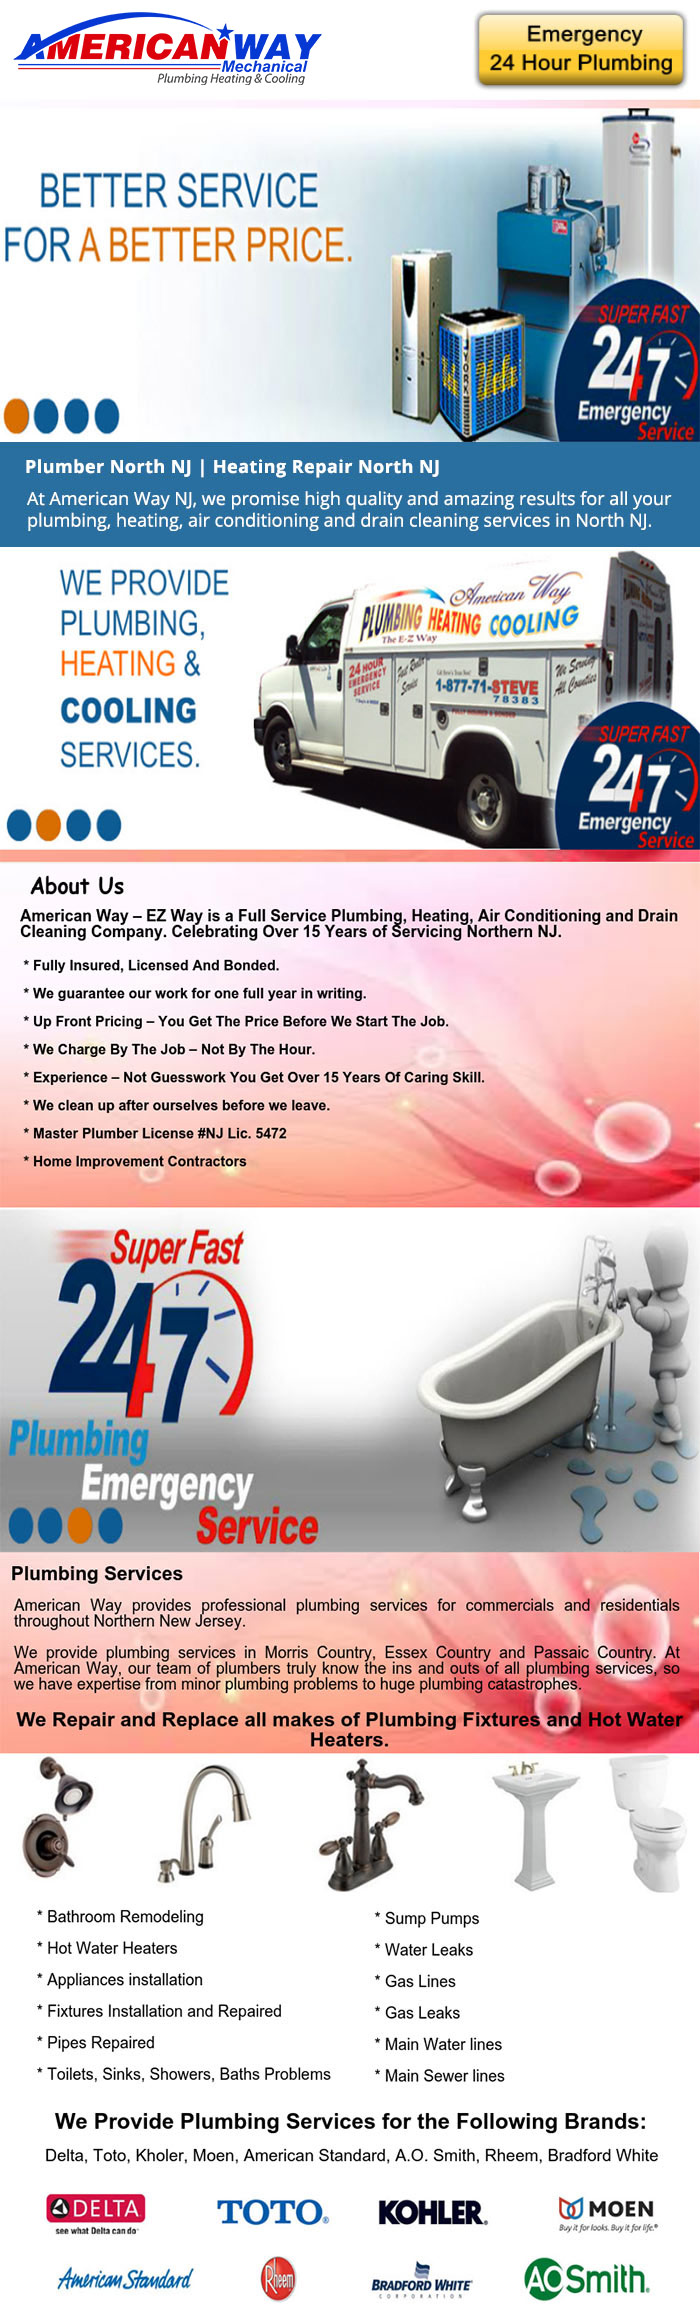 American Way Plumber West Orange NJ